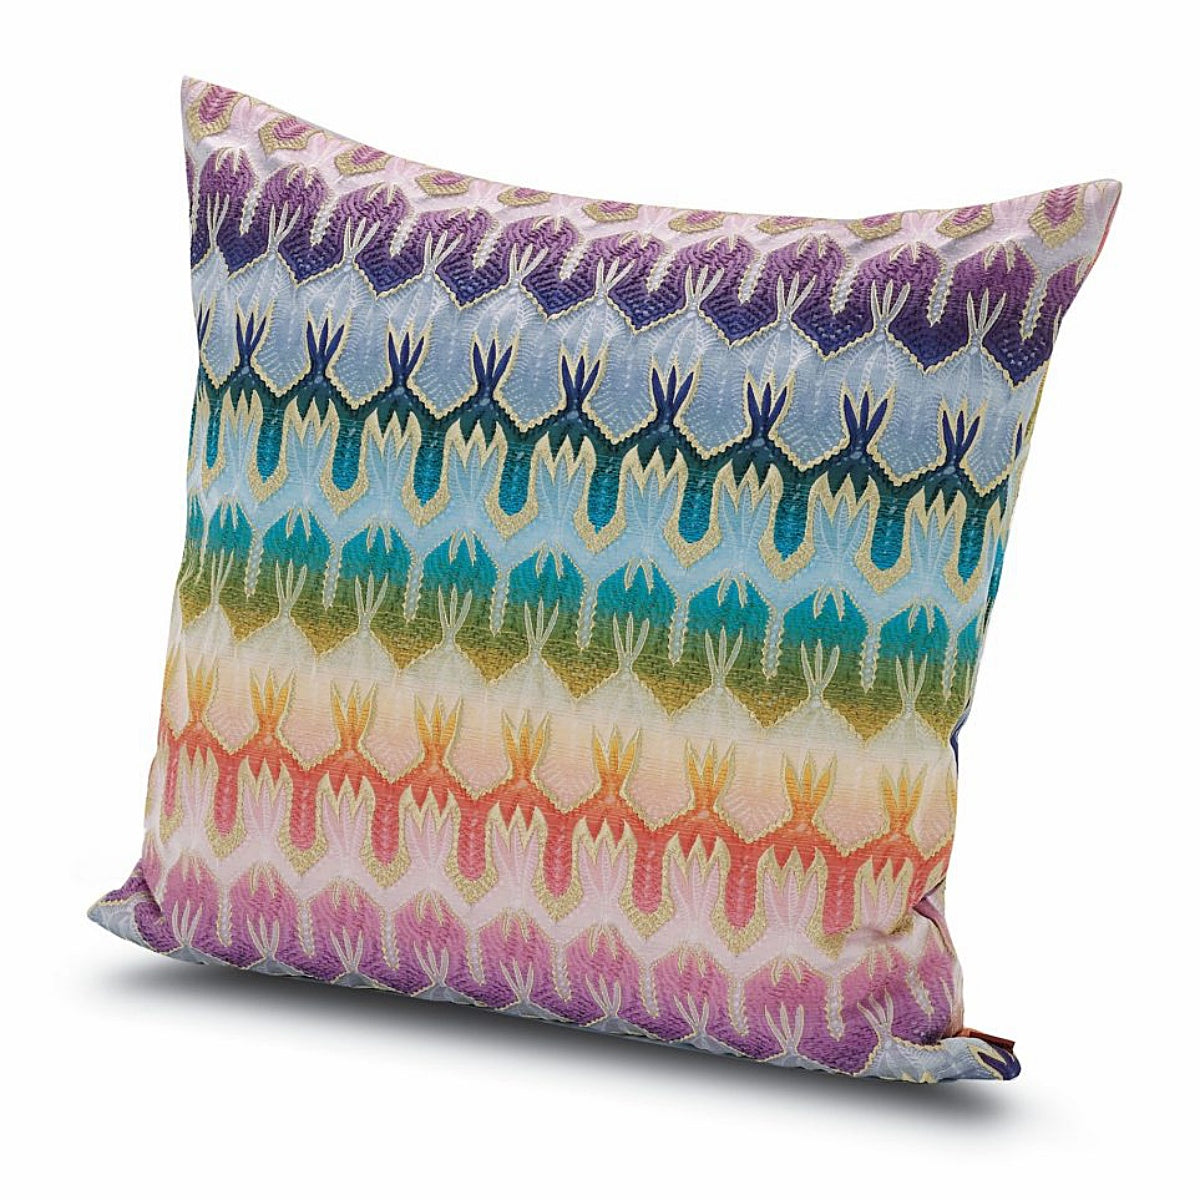 Missoni Home Pasadena Pillow - Bloomingdales